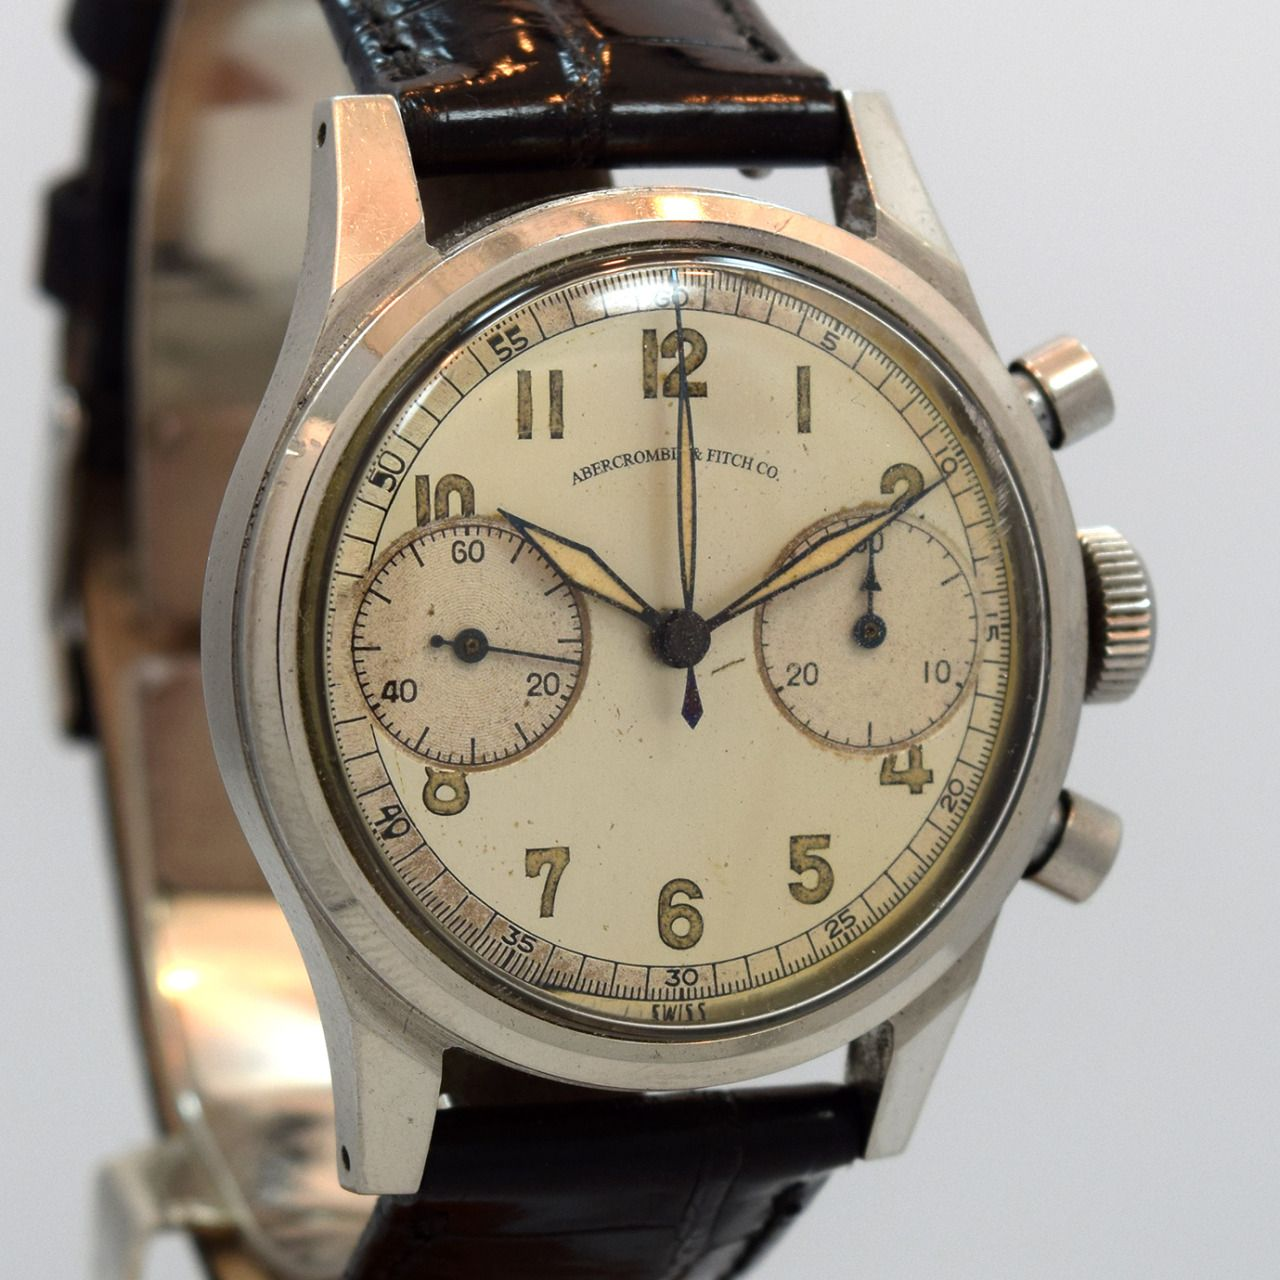 A 1950s vintage Abercrombie and Fitch Co. 2 Register Chronograph stainless steel watch with a patinated silver dial. (Store Inventory # 7612, listed at $3250). #ambercrombie #fitch #chronograph #cool #watch #watches #timepieces #vintage #stawc